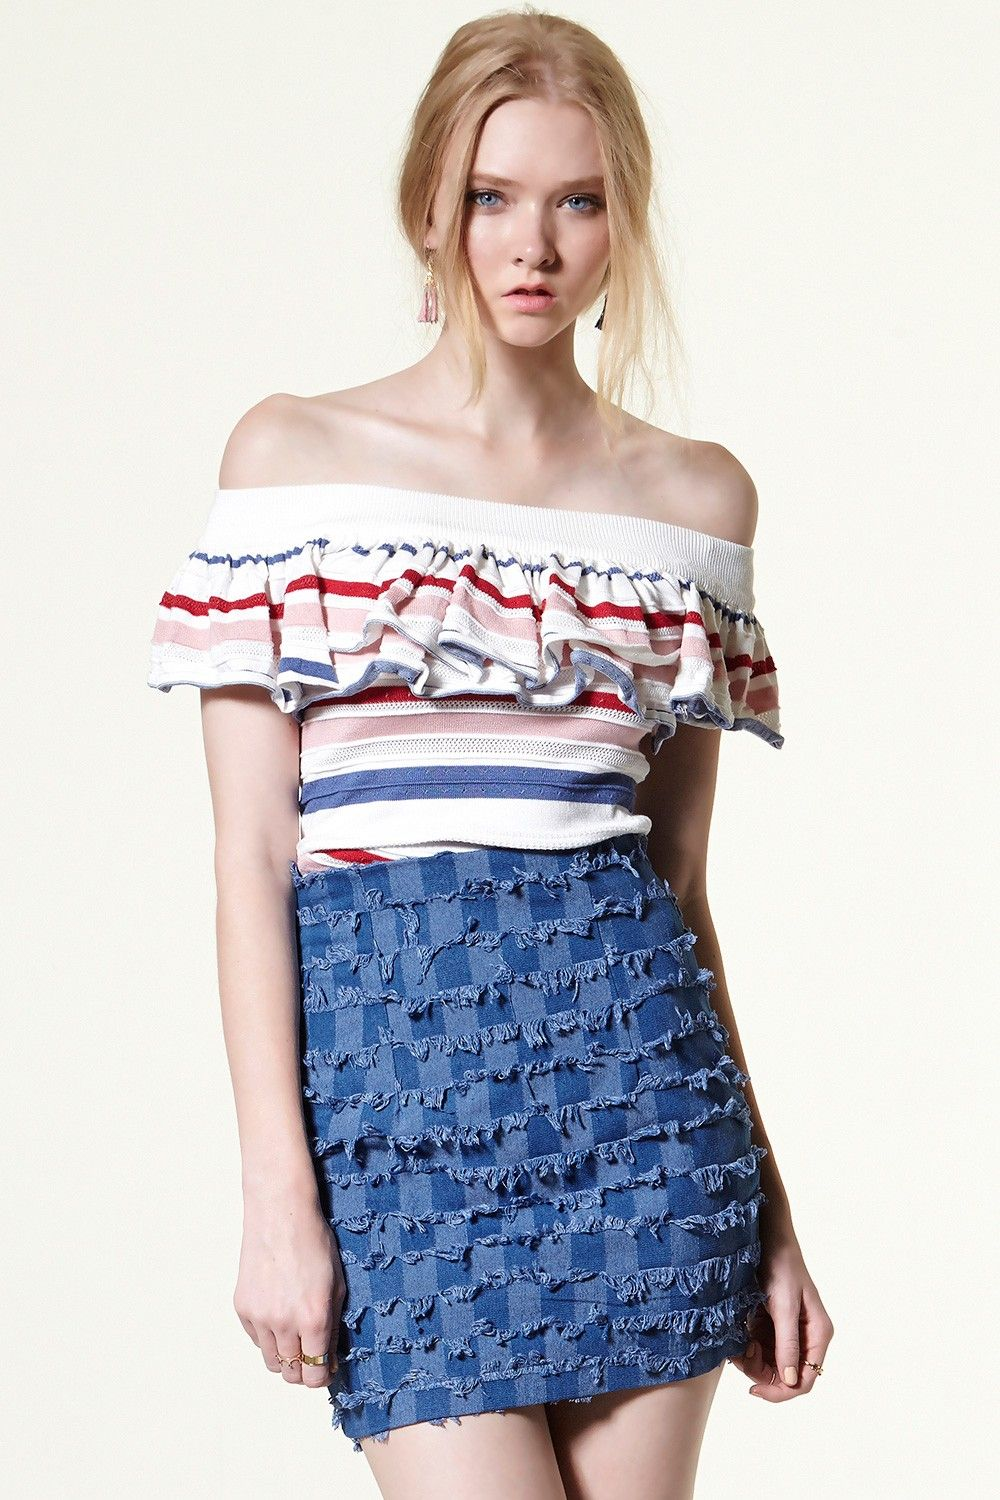 Elania Stich Blcock Mini Skirt Discover the latest fashion trends online at storets.com